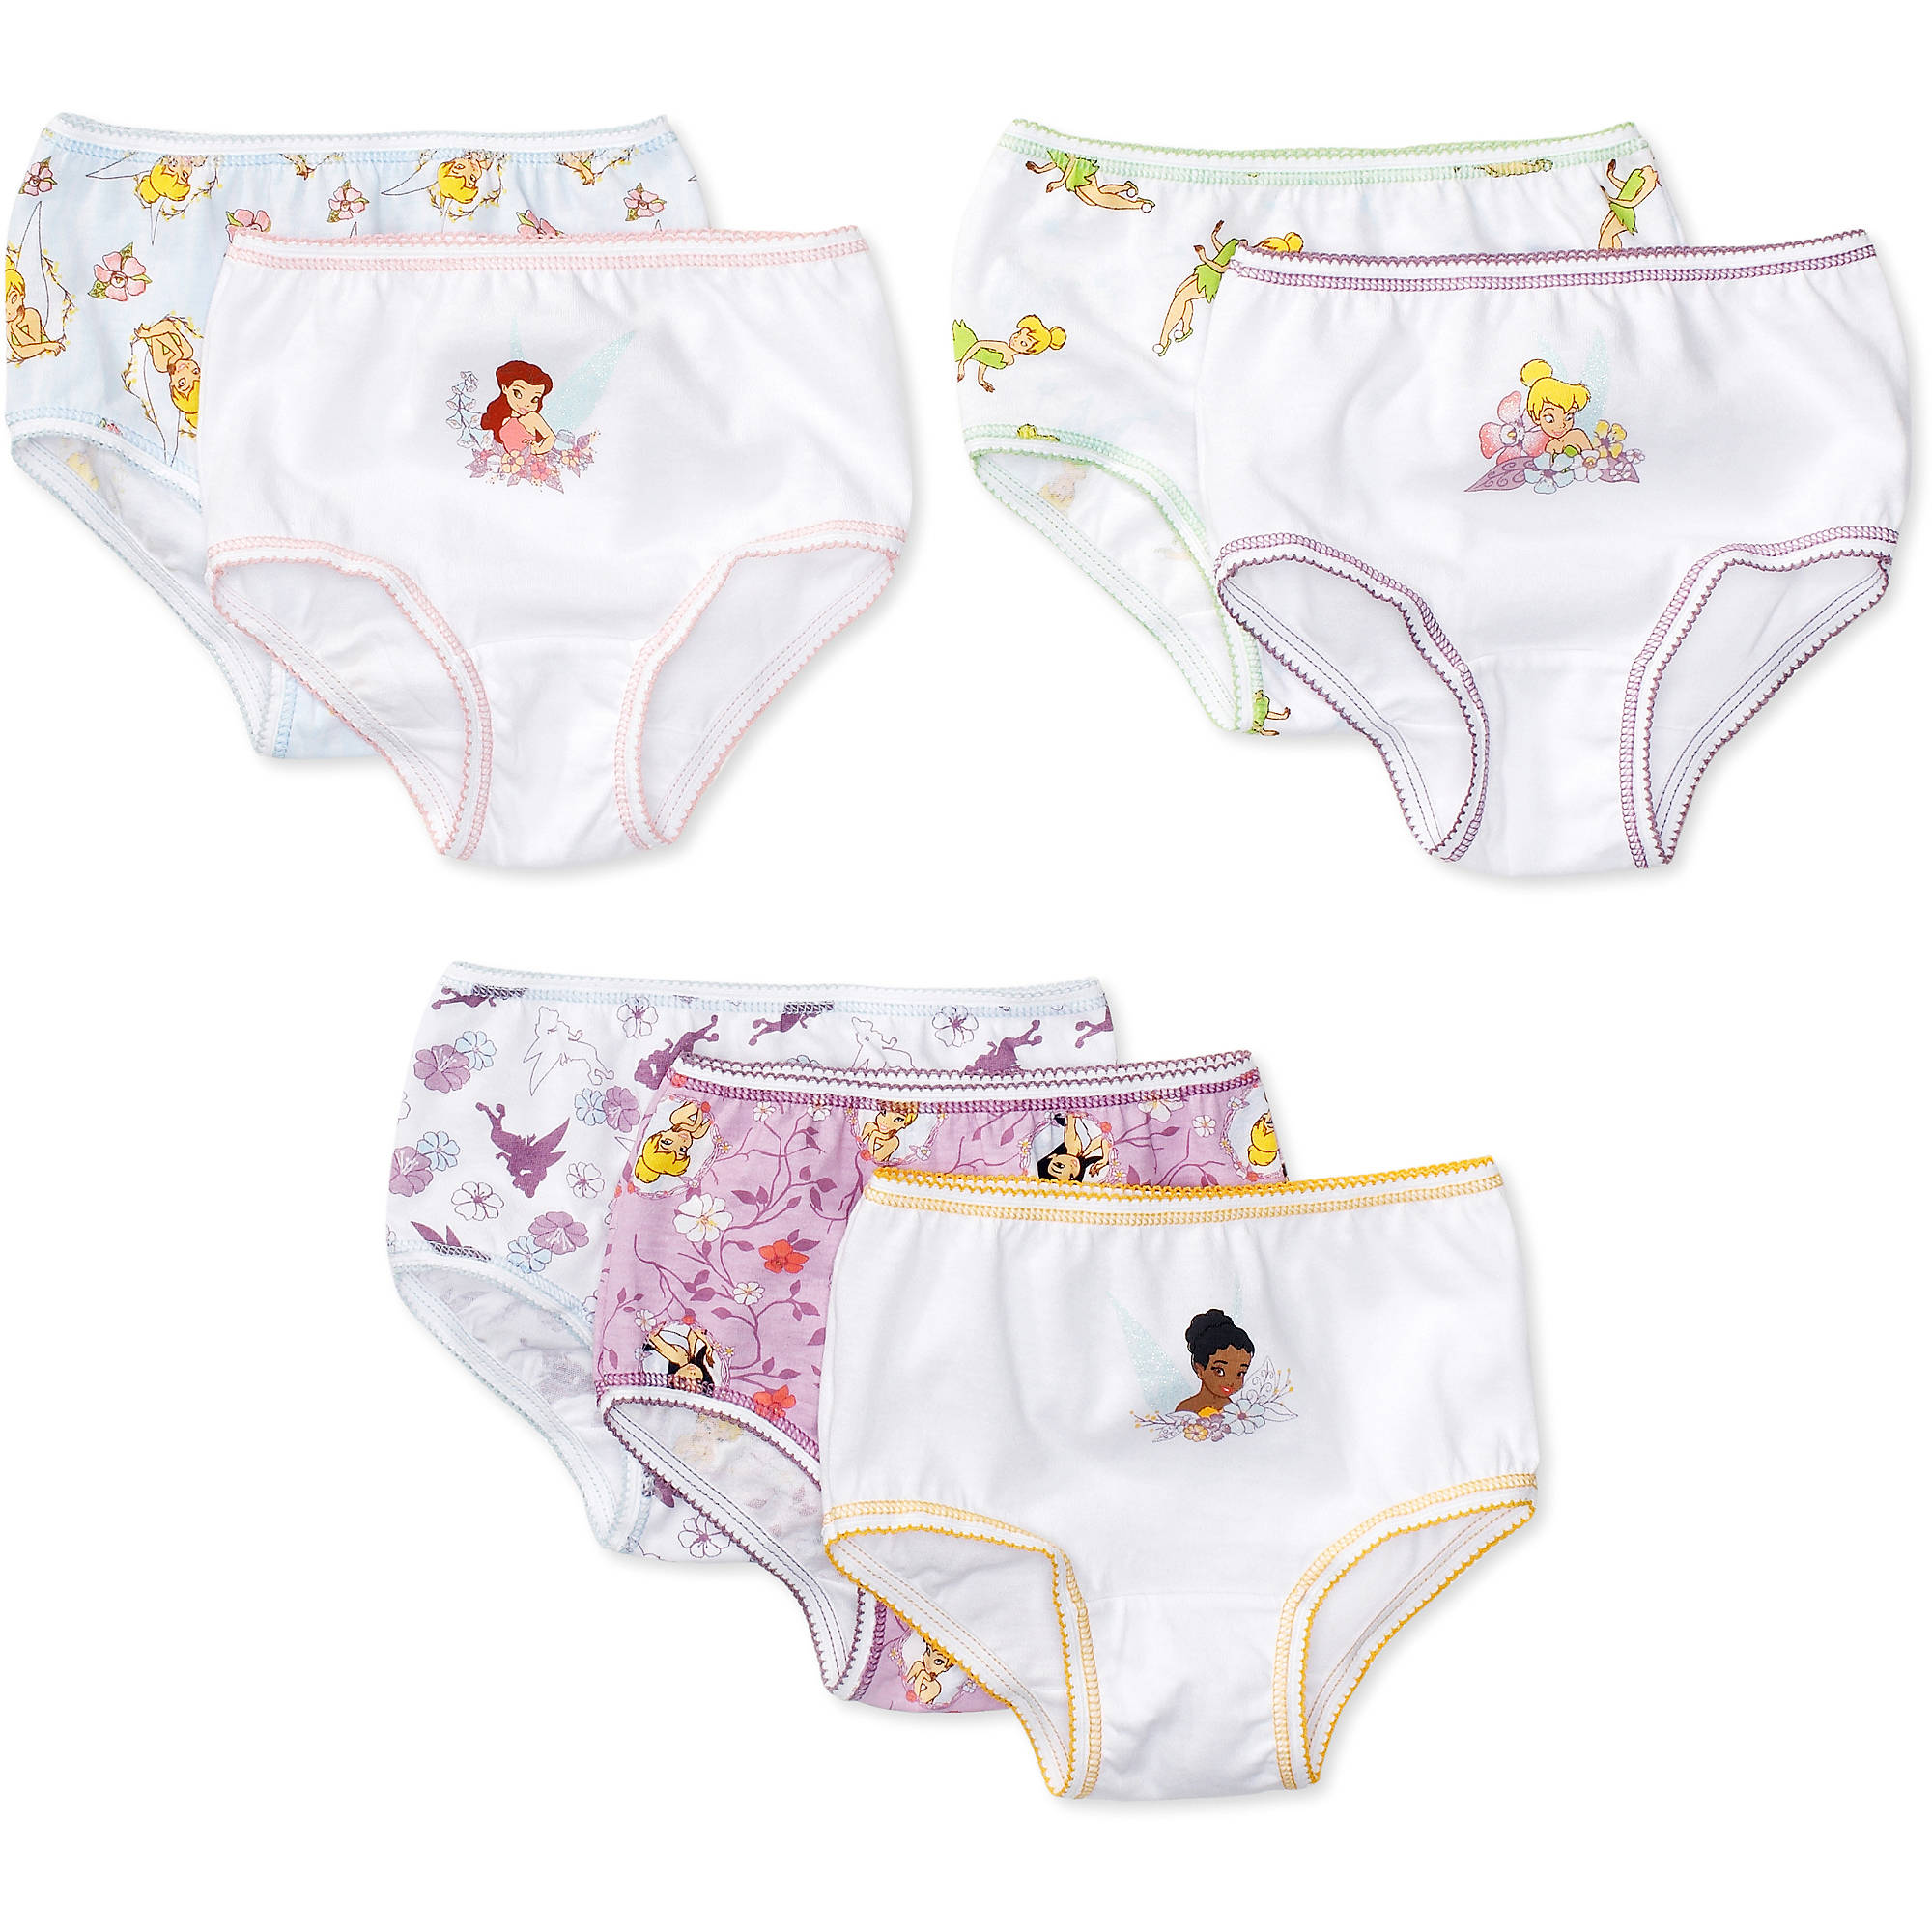 Disney Toddler Girl Tinker Bell Underwear, 7-Pack